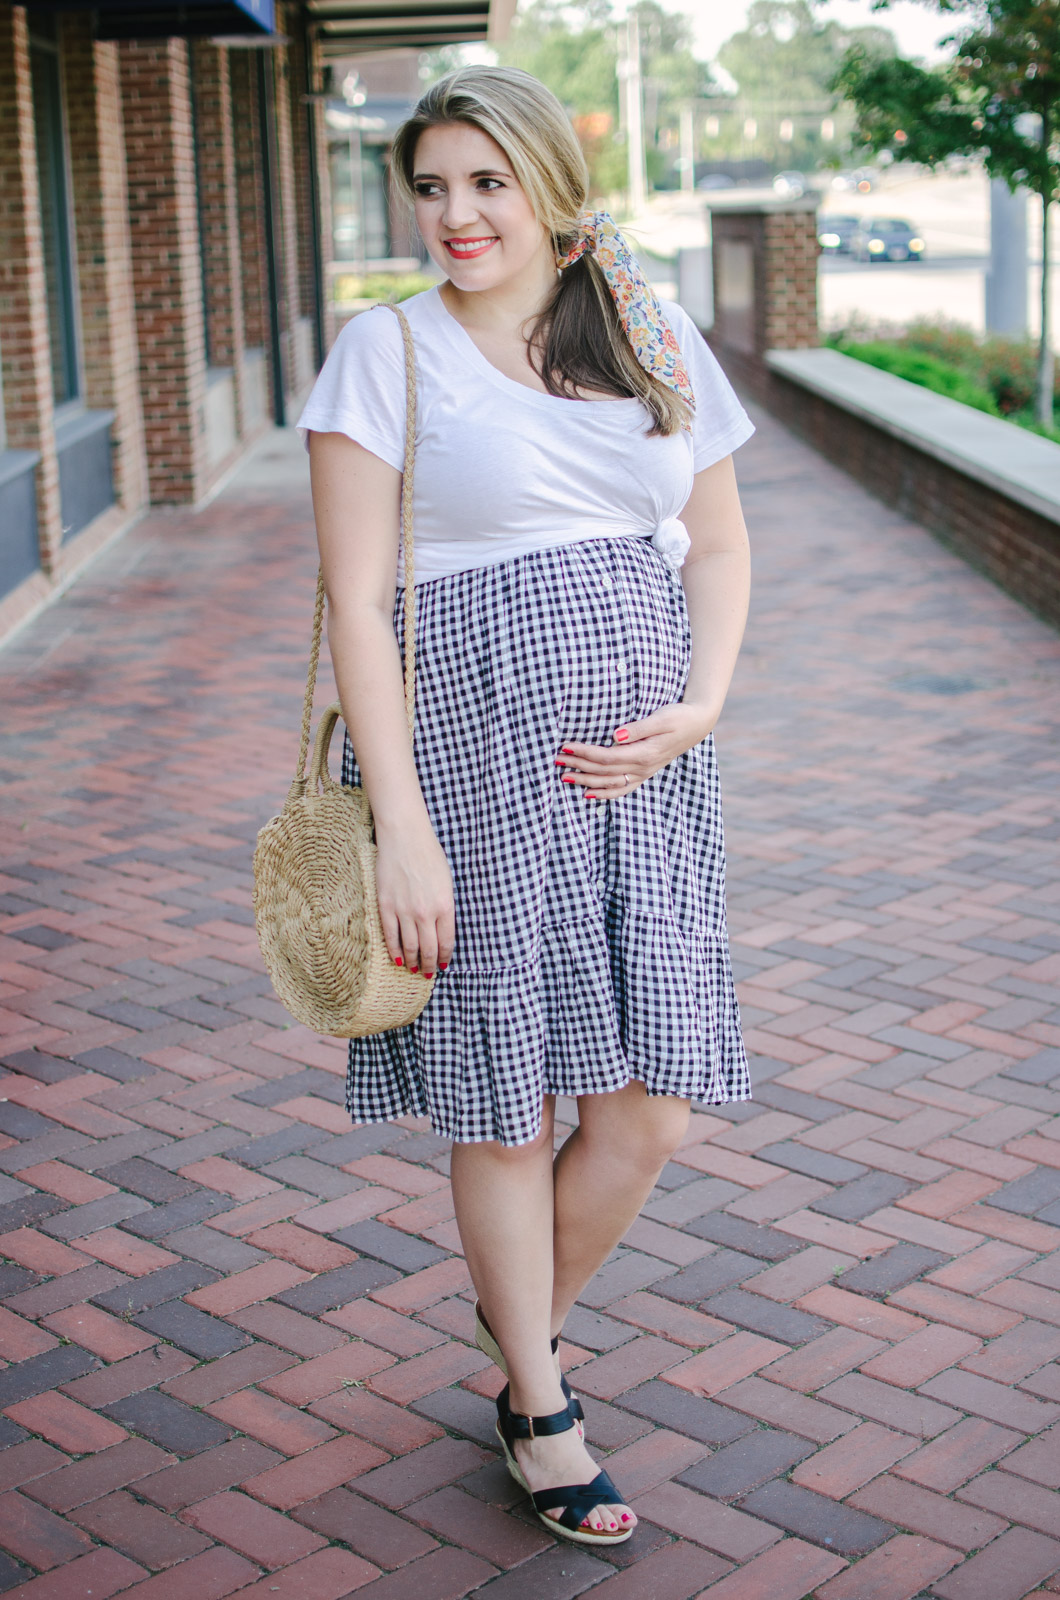 midi skirt pregnancy style - how to wear a non-maternity skirt pregnant | bylaurenm.com